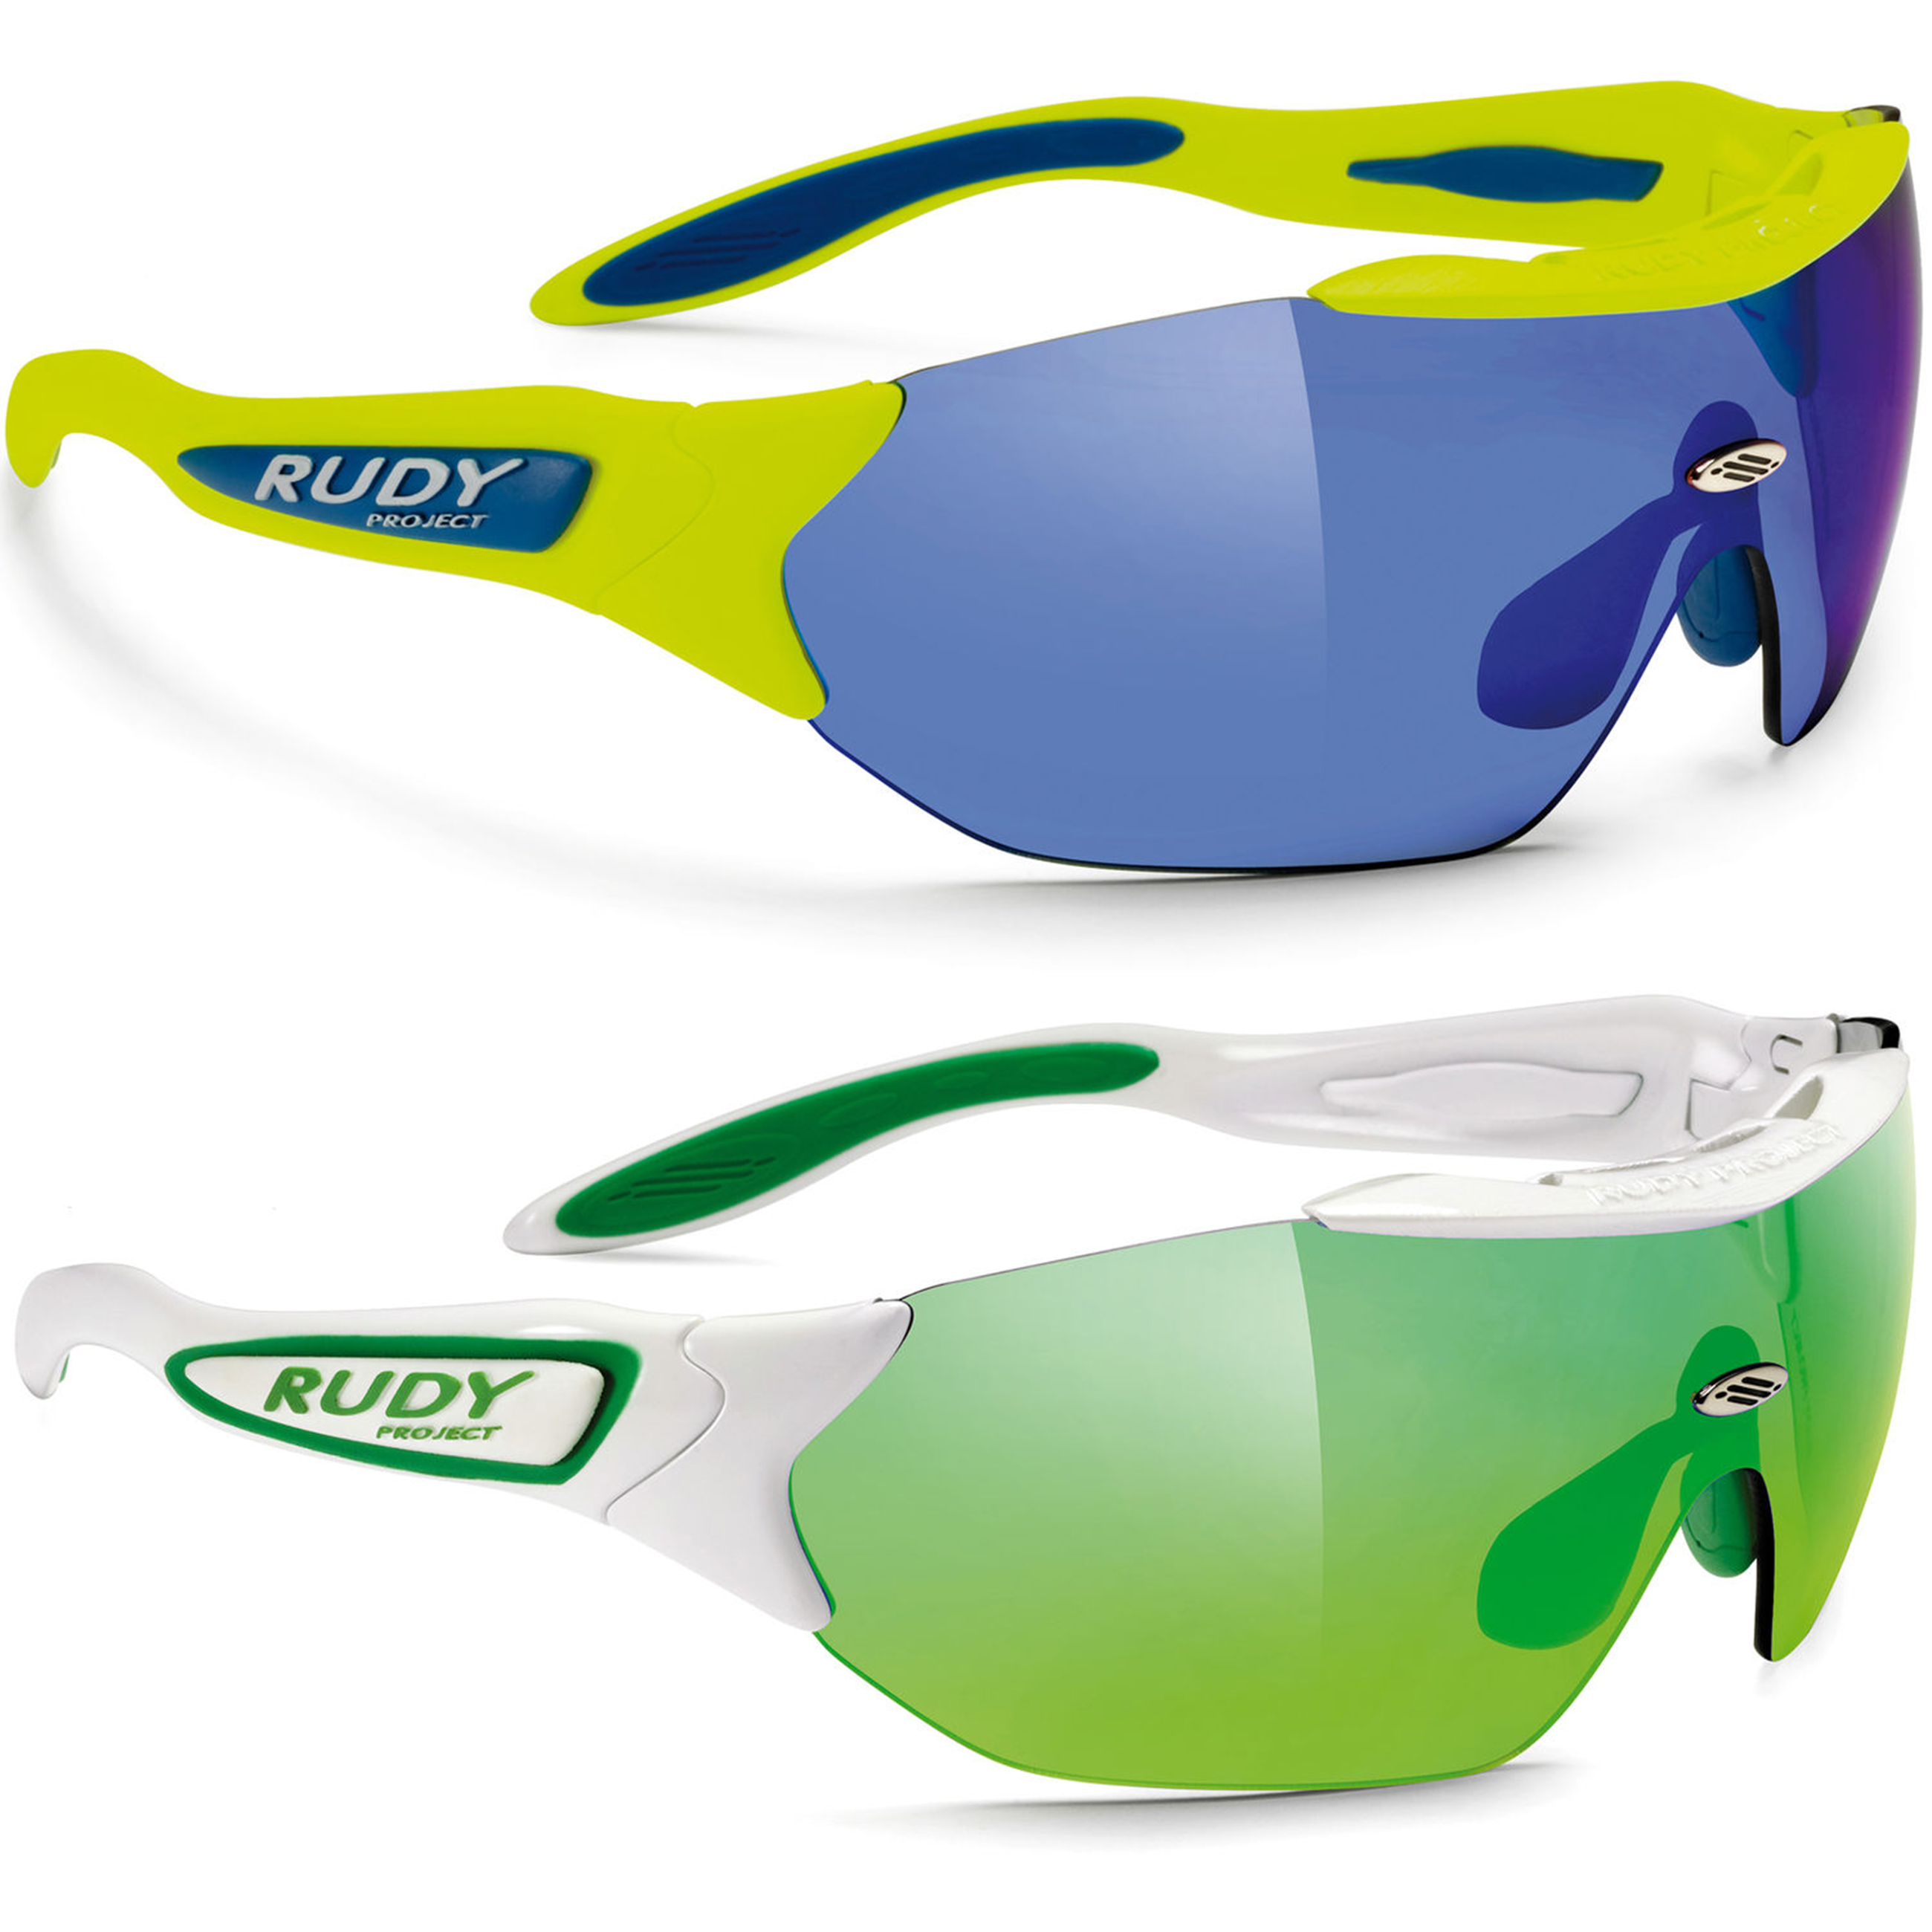 rudy project eyewear Find great deals on ebay for rudy project sunglasses shop with confidence.